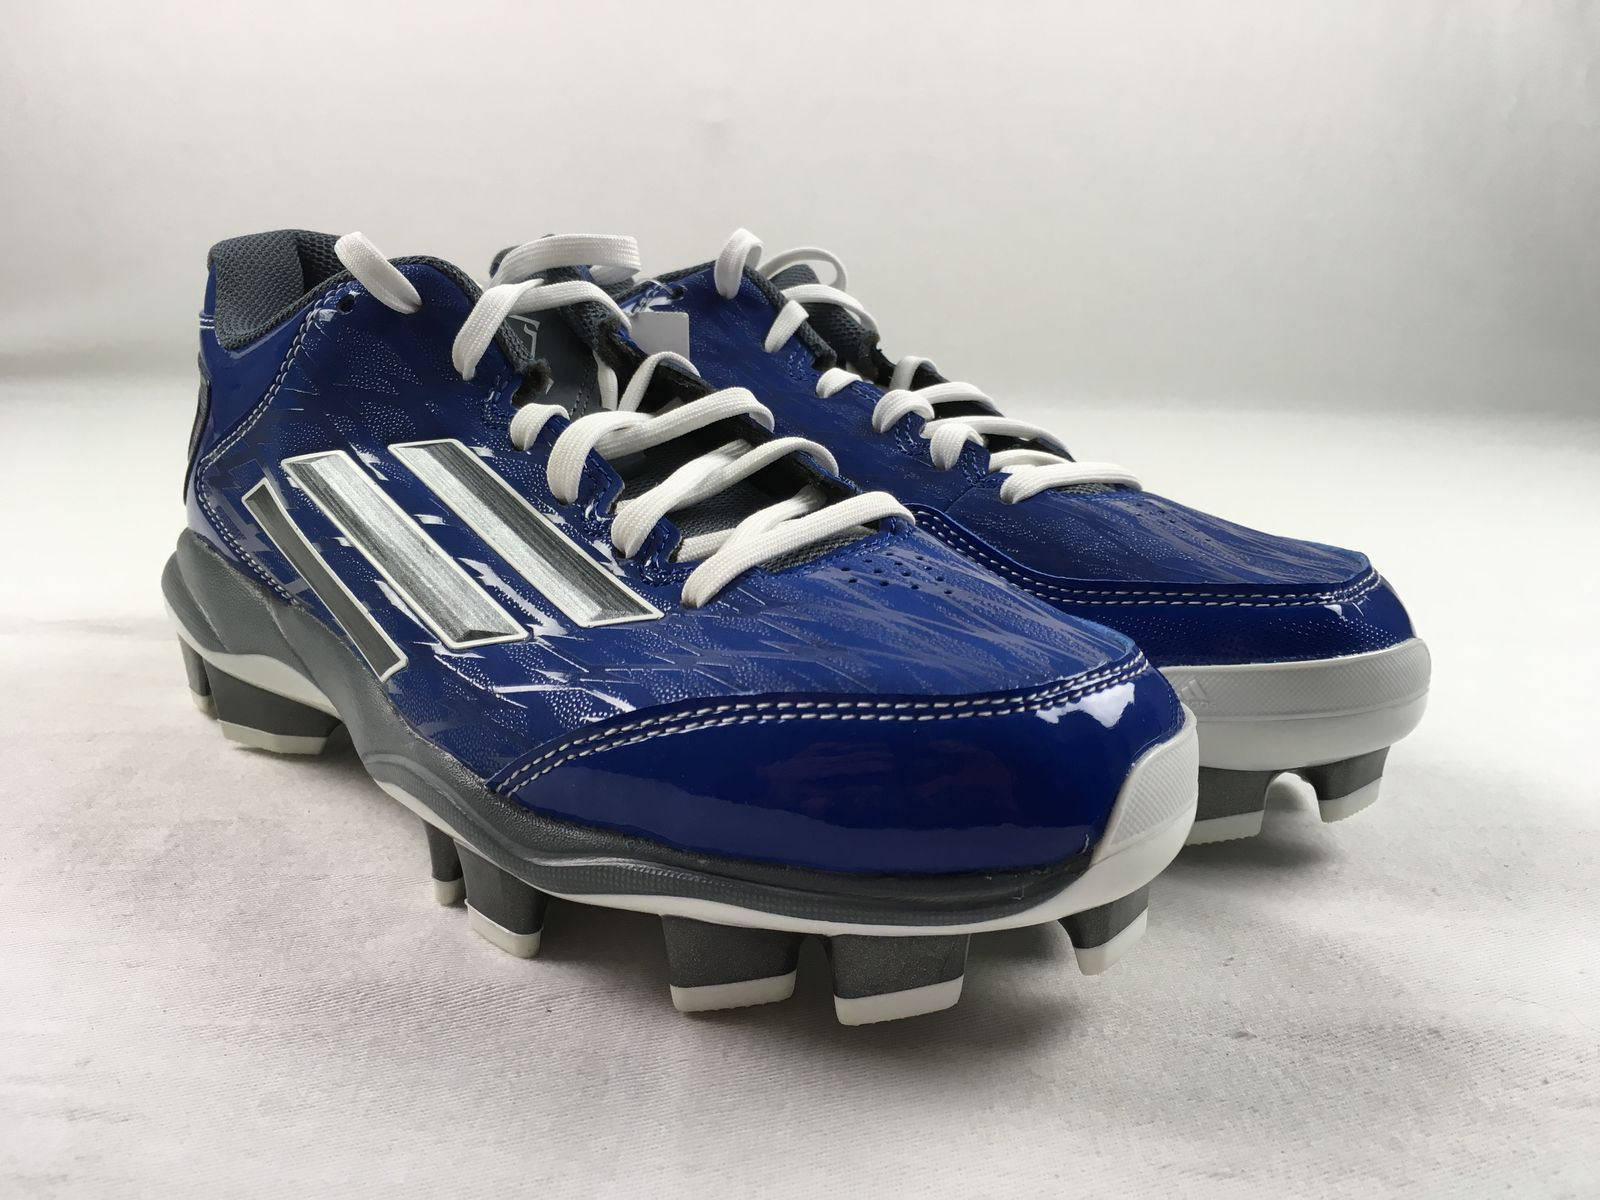 NEW adidas Power Alley 2 TPU W - Blue Cleats (Women's Multiple Sizes)